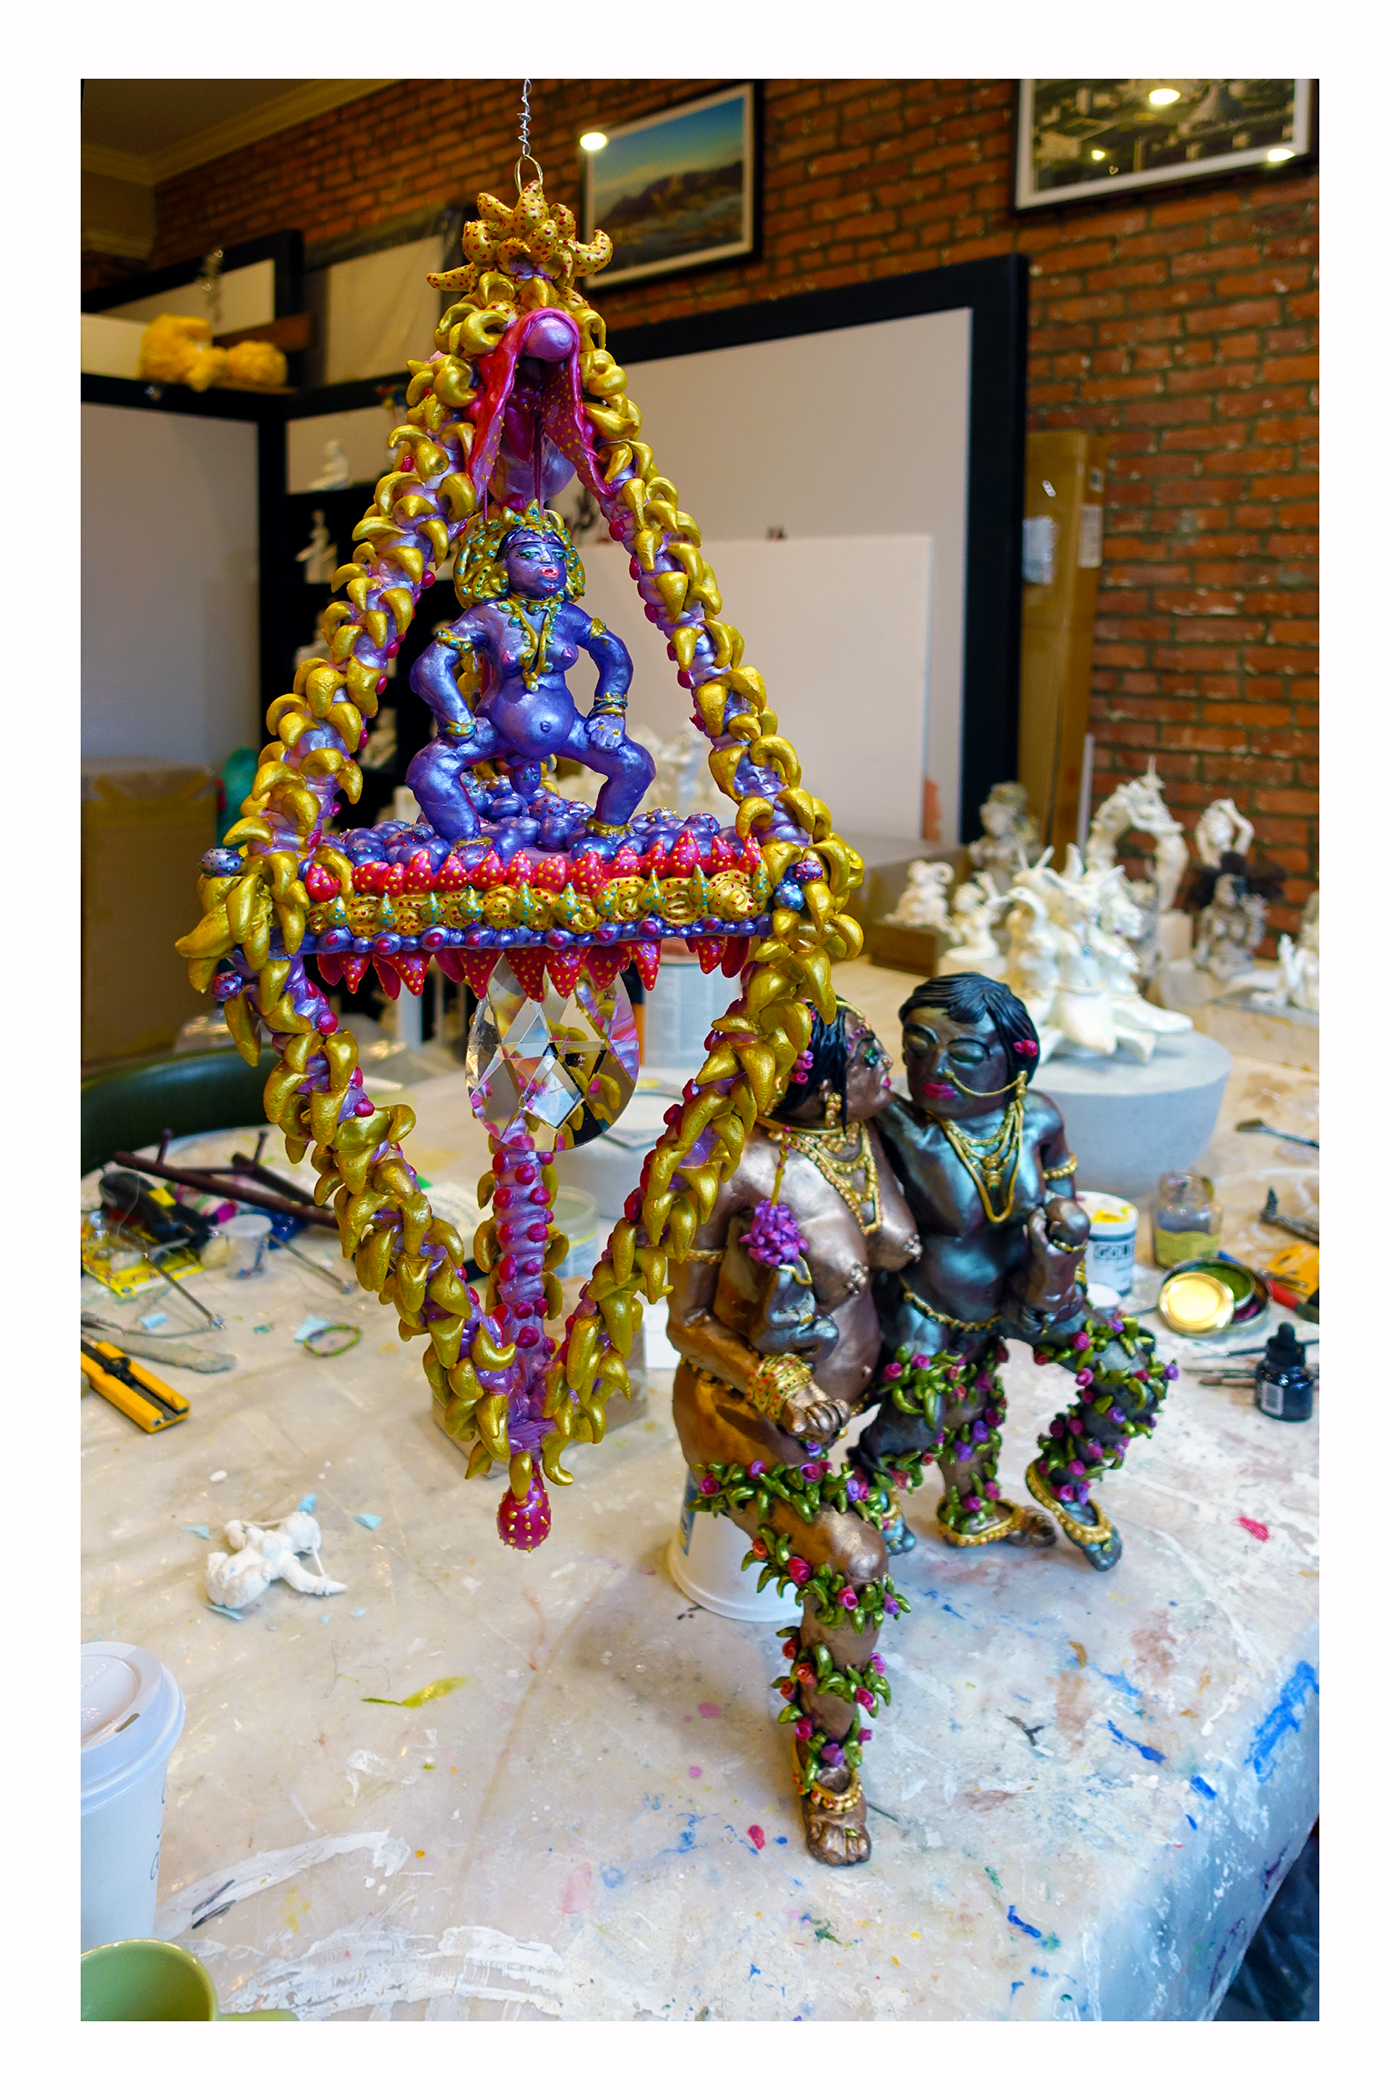 Abichandani's   suspended diamond sculpture symbolizing the   female triangle of life   with a goddess giving birth.  On the table is a sculpture of a same sex female couple representing some of the artist's friends who recently gained the right to lawfully raise families as a union.